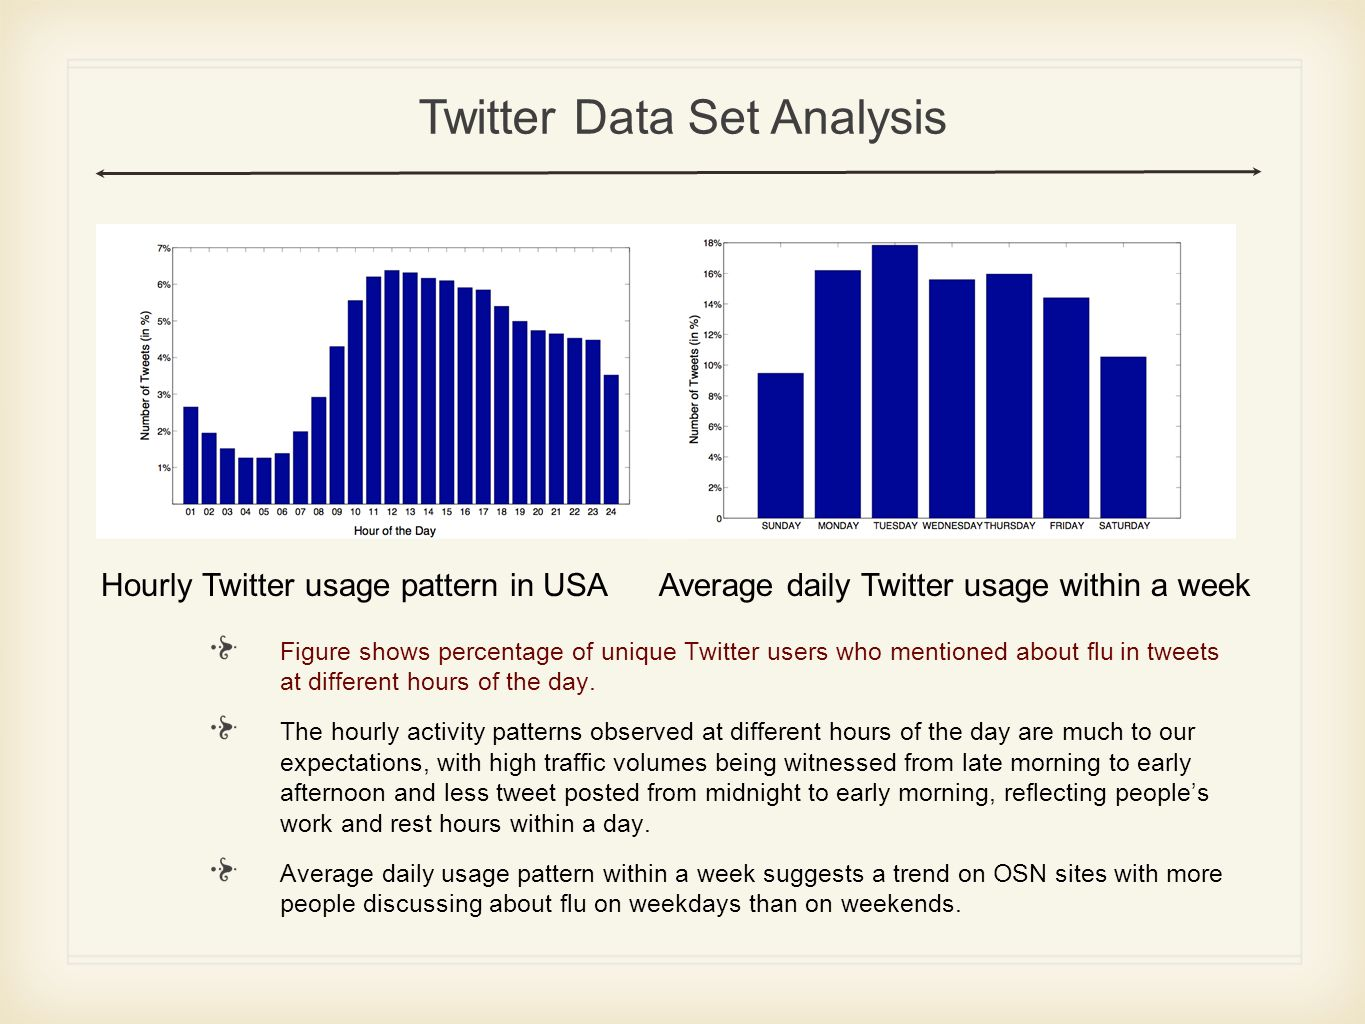 Hourly Twitter usage pattern in USAAverage daily Twitter usage within a week Figure shows percentage of unique Twitter users who mentioned about flu in tweets at different hours of the day.